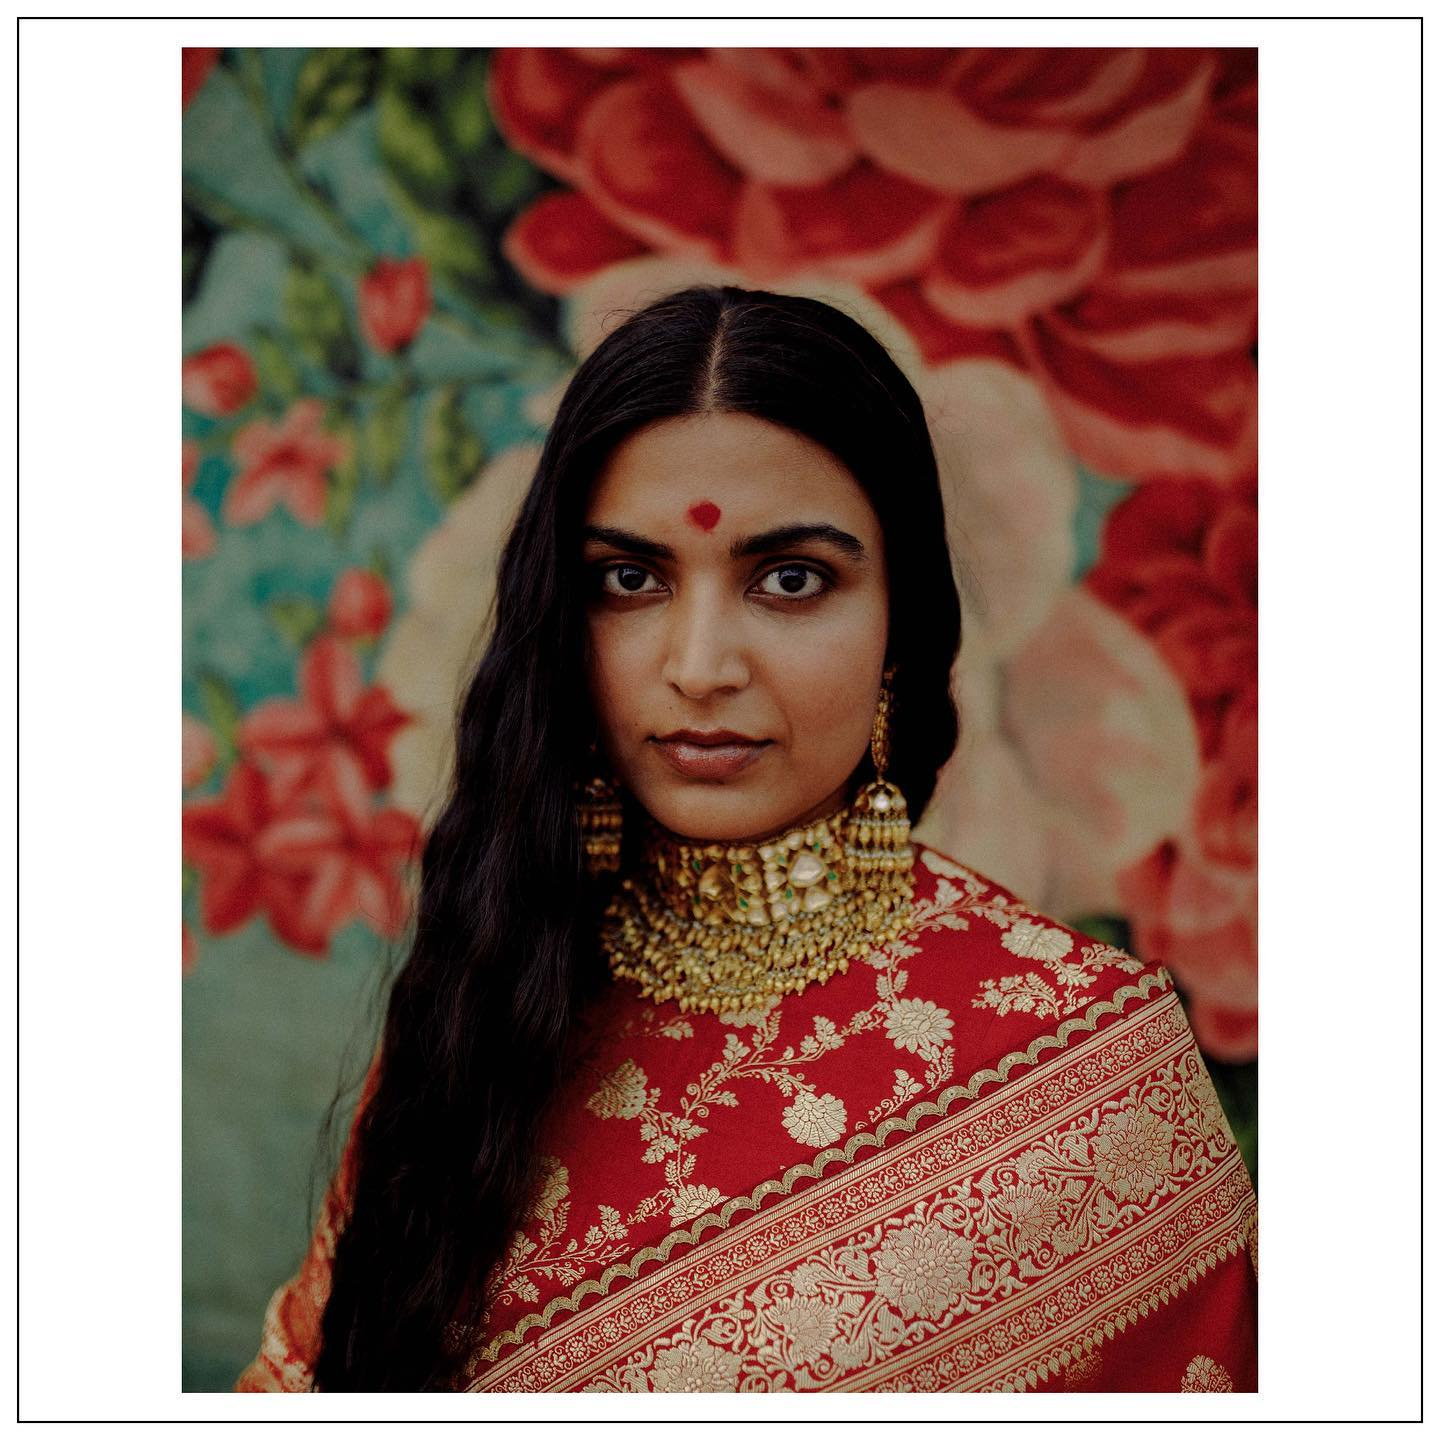 The Sabyasachi 2021 Collection. Beautiful sabyasachi red benarasi saree.  Womenswear  jewellery Sabyasachi jewelry and accessories Sabyasachi accessories.  For all product related queries please email  at customerservice@sabyasachi.com or contact retail stores directly.  Email: mumbairetail@sabyasachi.com… 2021-04-11